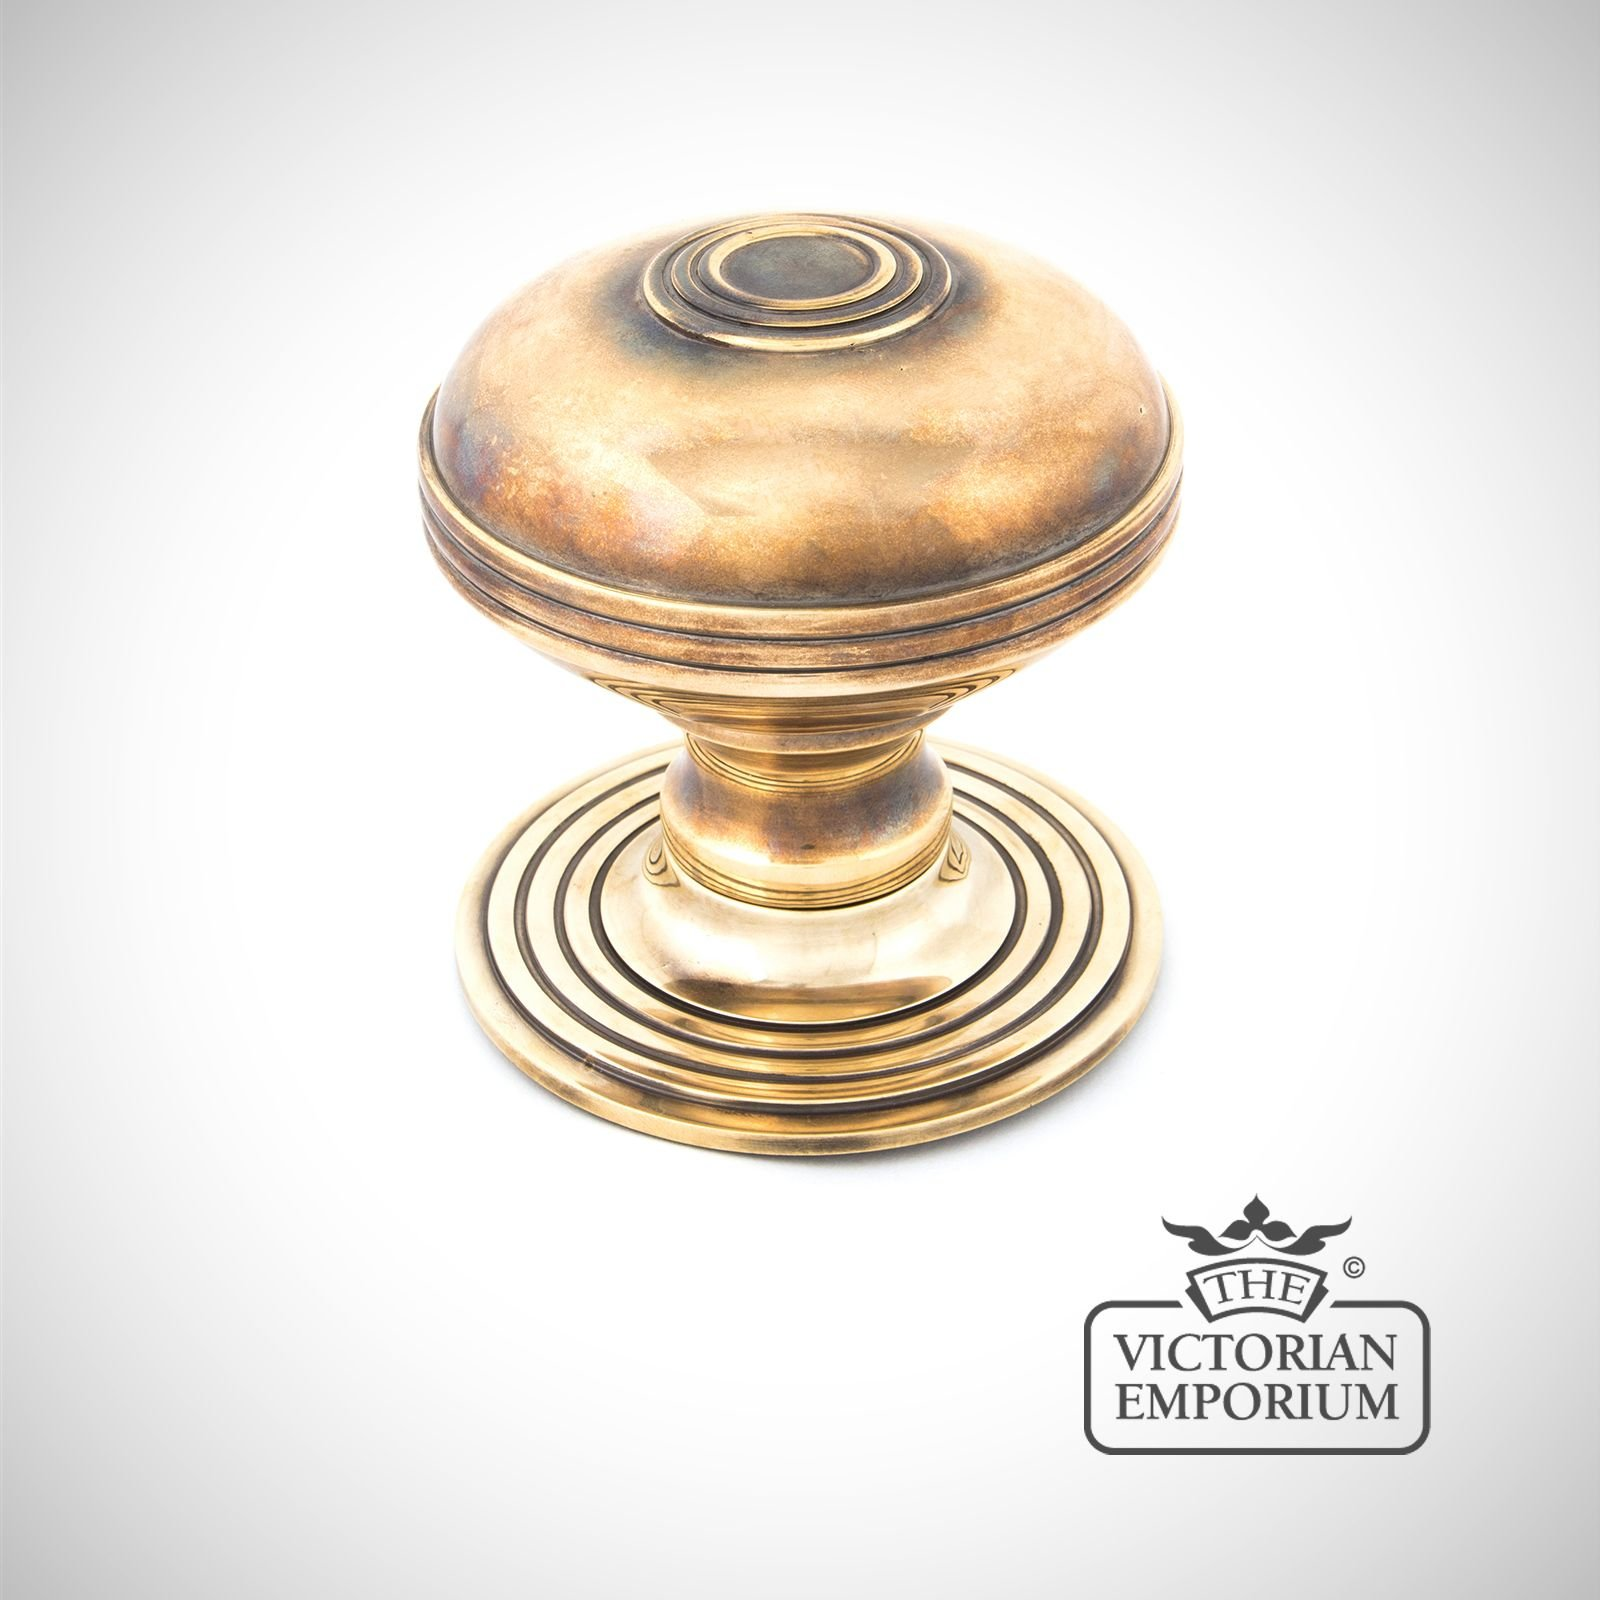 Pressbury centre door knob in Aged Brass | Door knobs and door handles